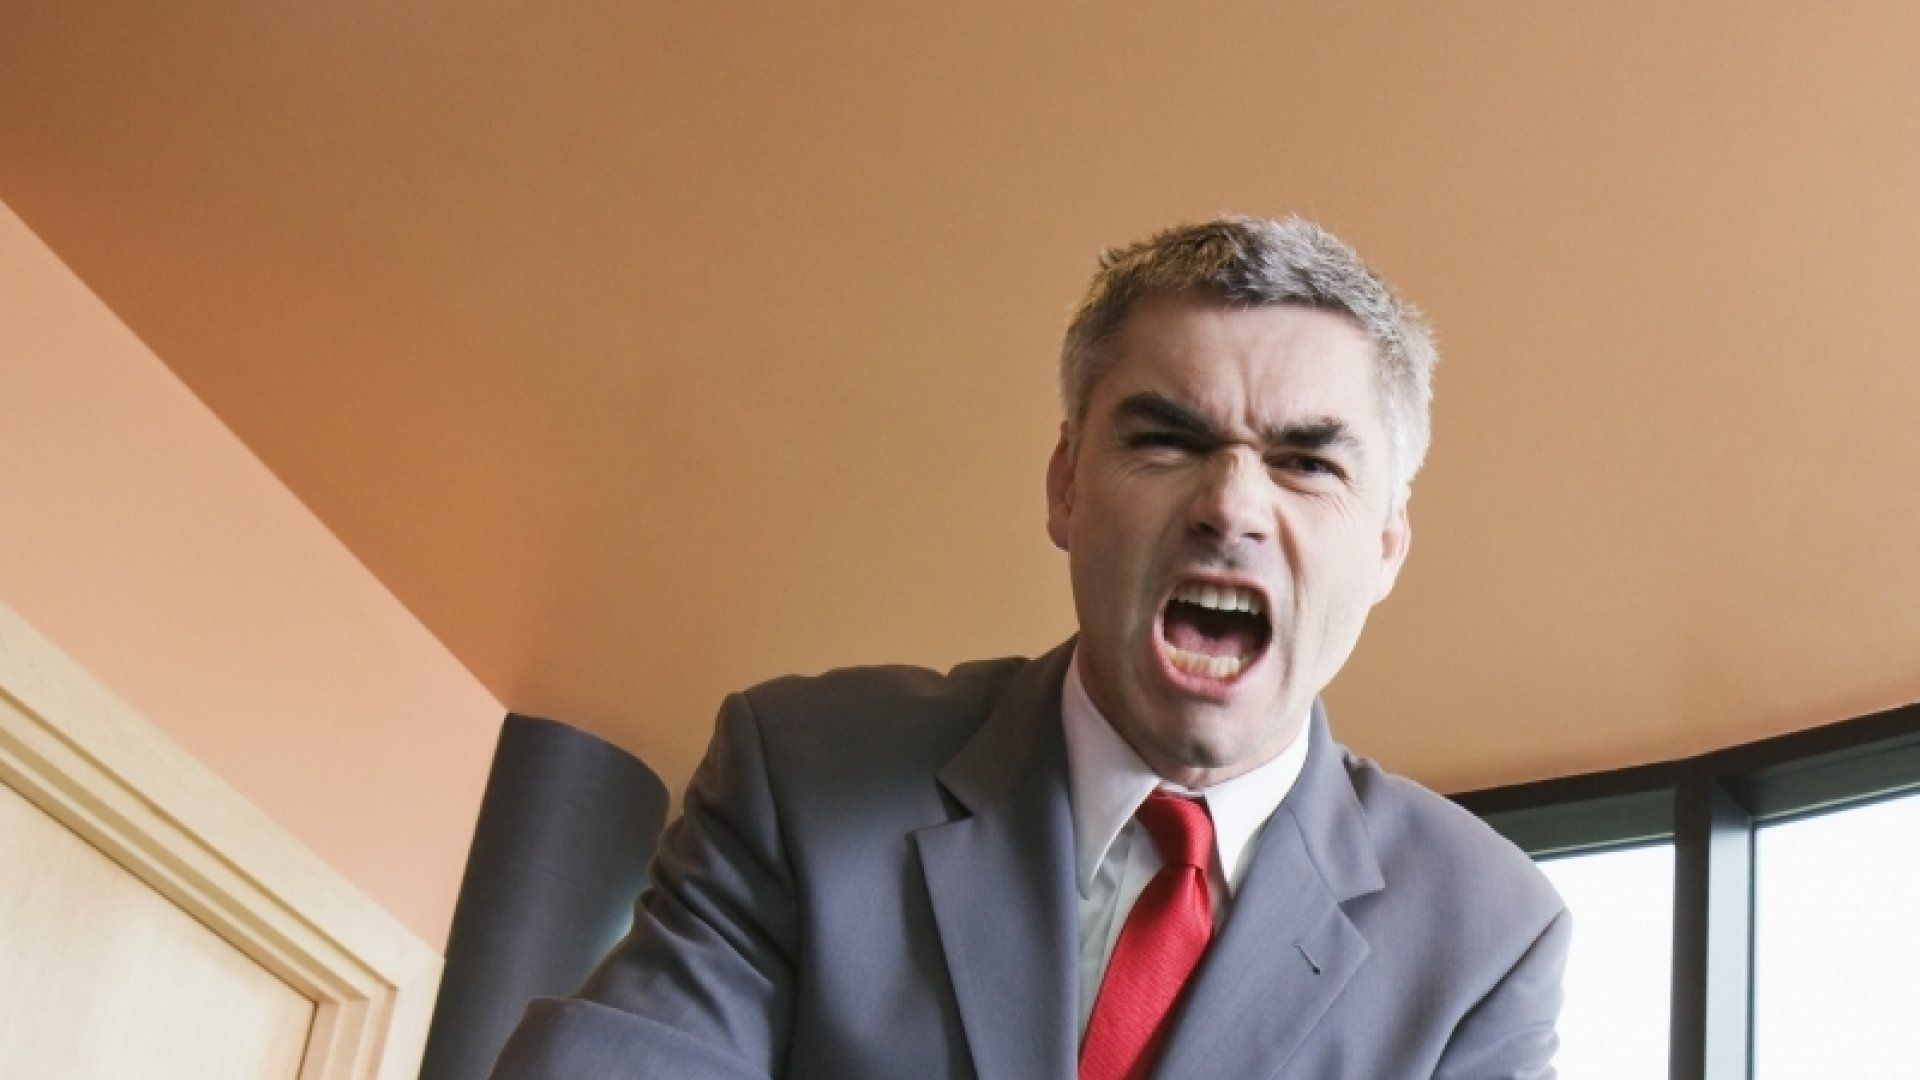 9 Ways to Tell if You Are an Abrasive Boss